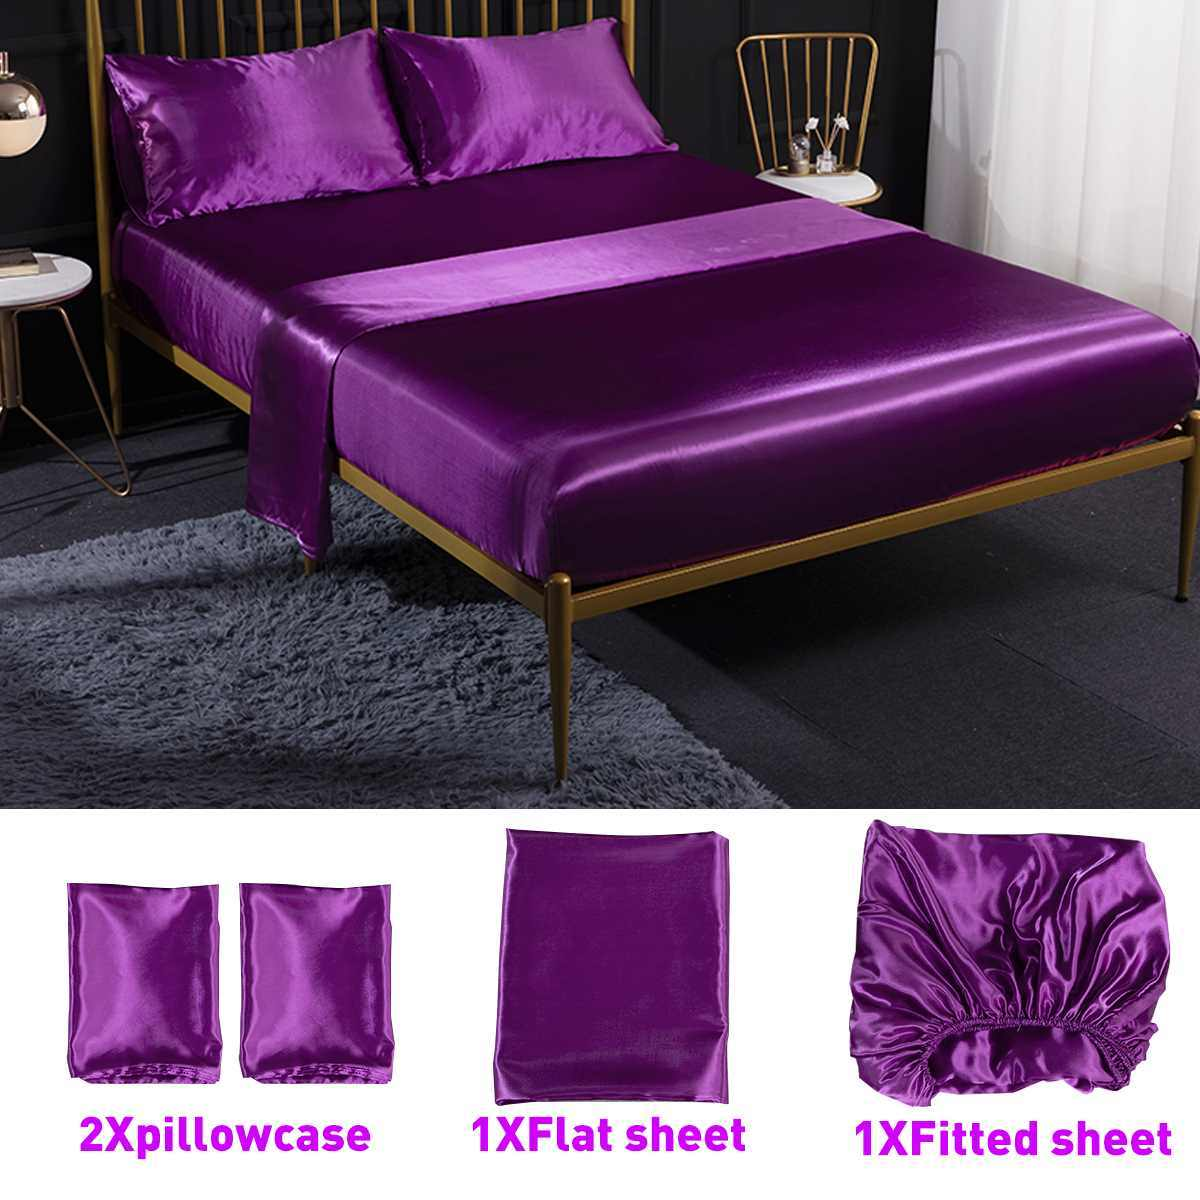 4Pcs Romantic Silk Bedding Set Soft Silk Satin Home Textile Bed Set Flat Sheet Fitted Sheet Pillowcase Twin/Full/Queen/King Size